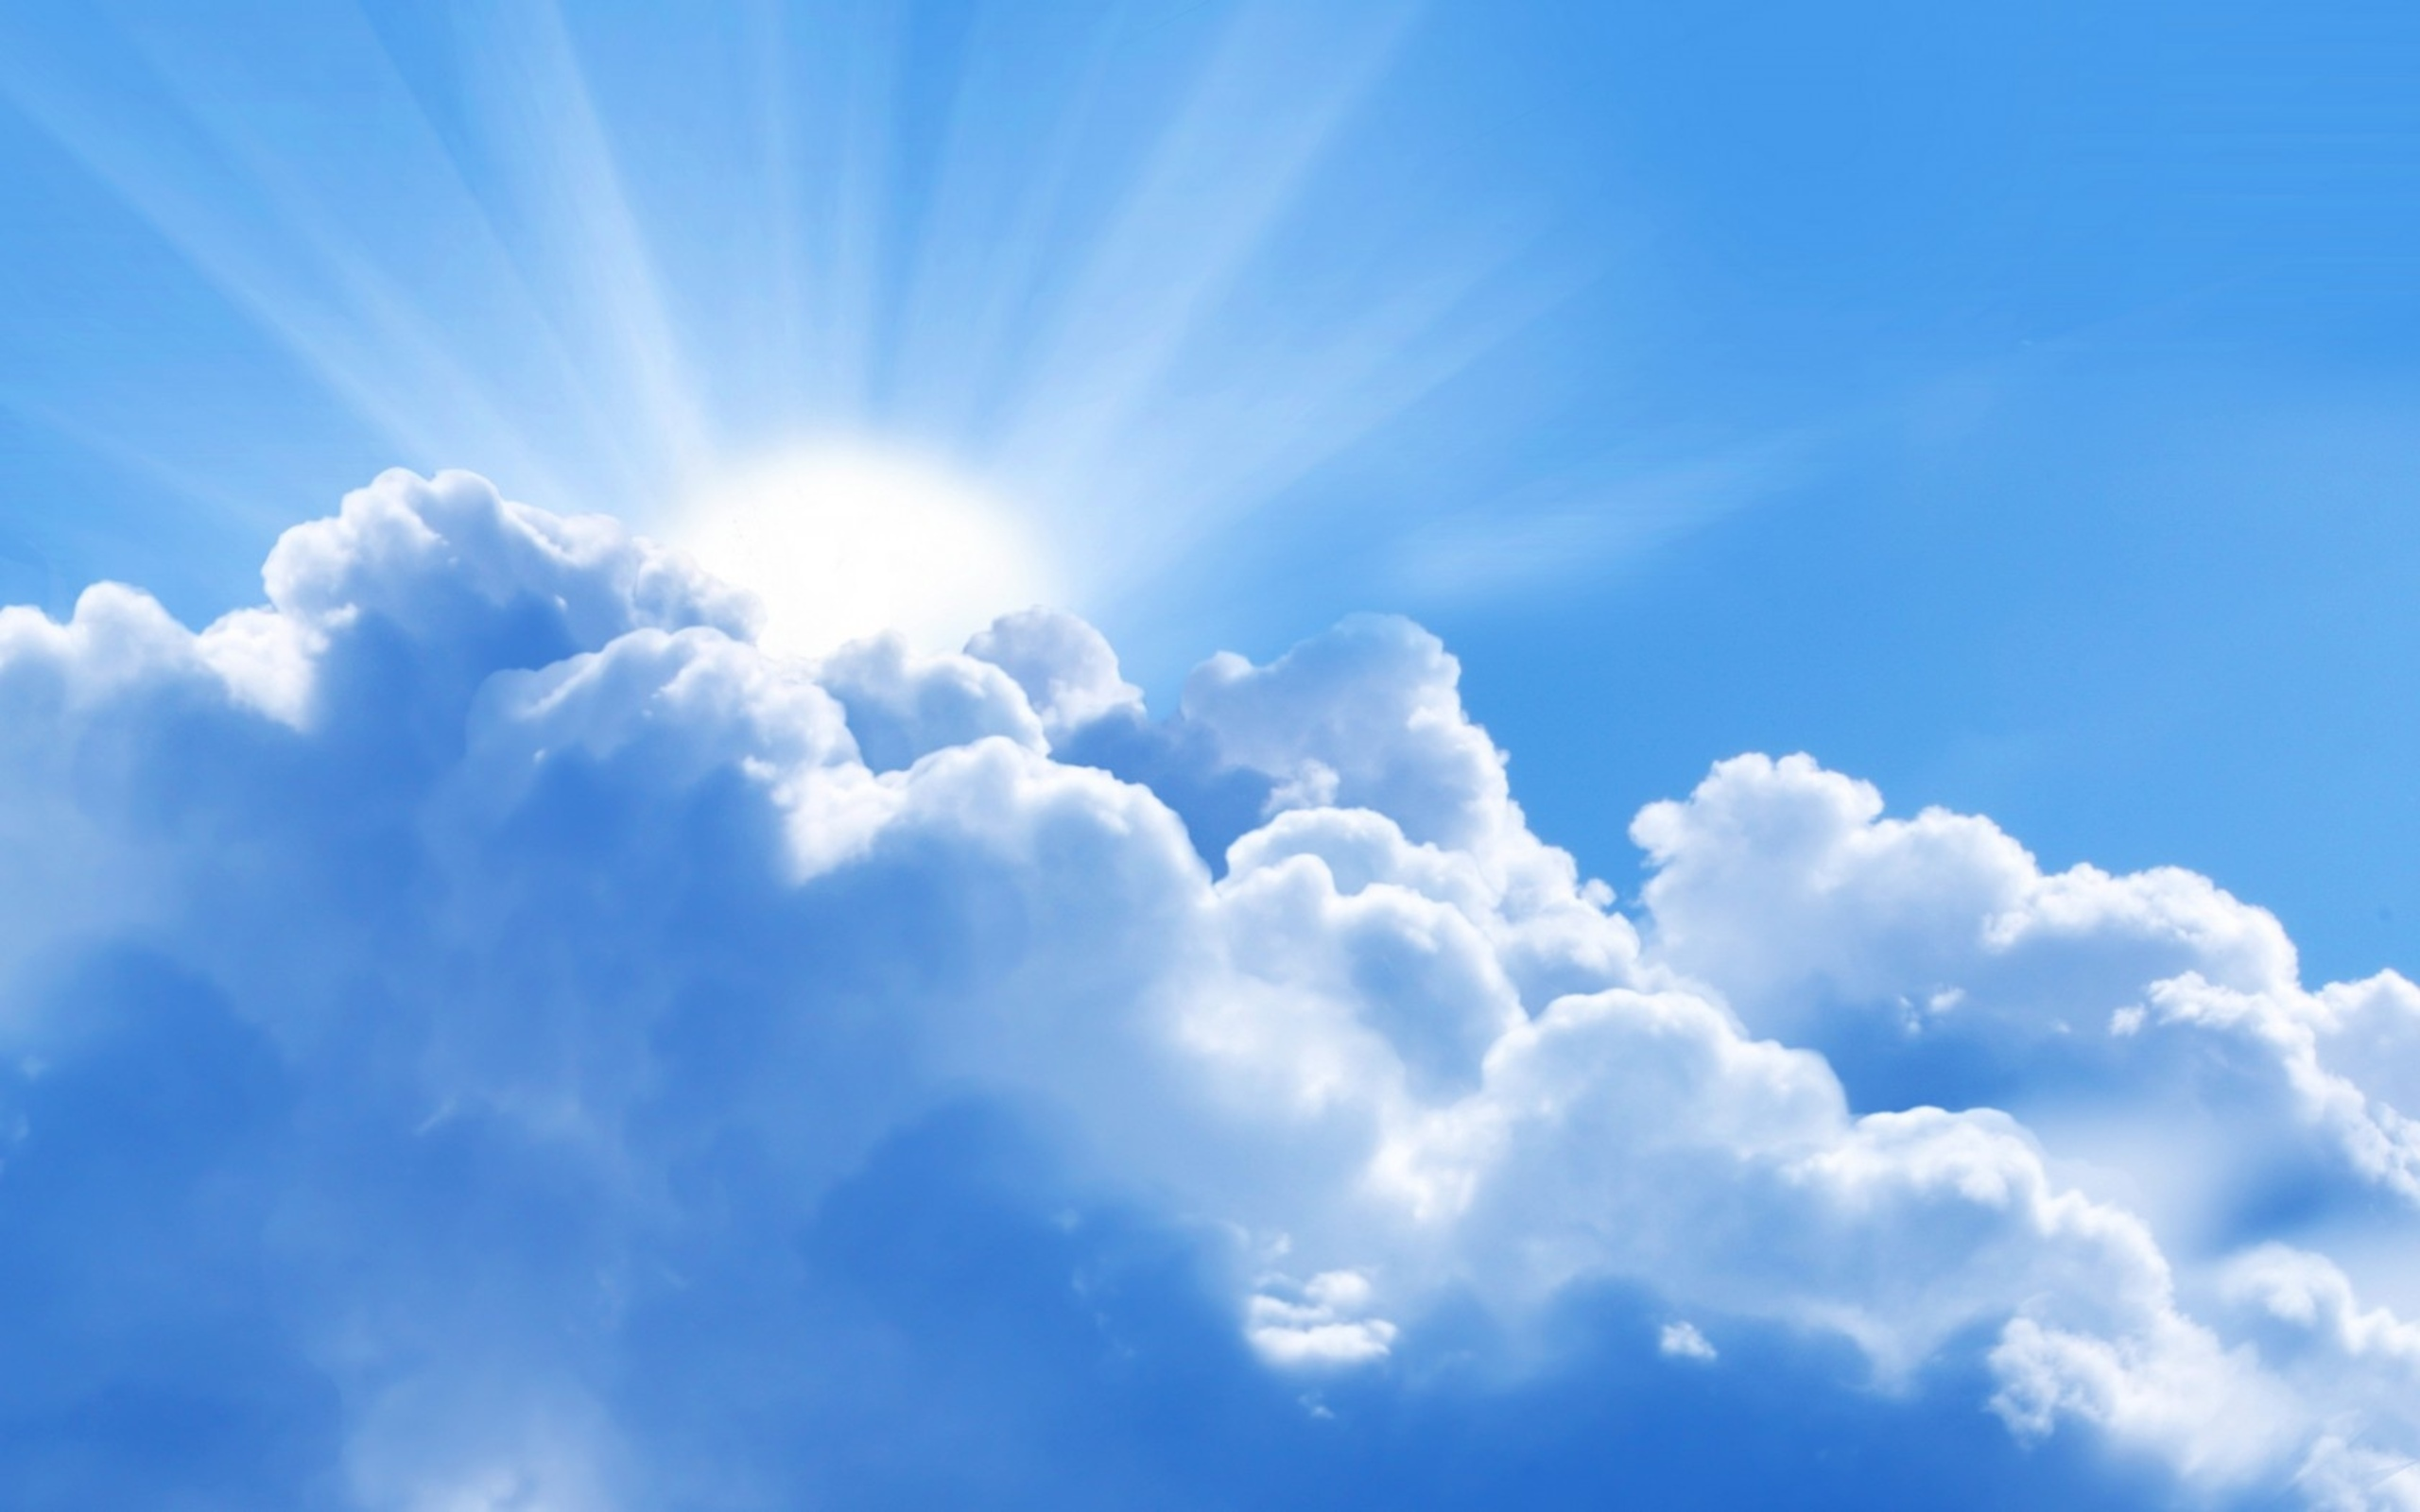 Blue Sky and Clouds Wallpaper - WallpaperSafari